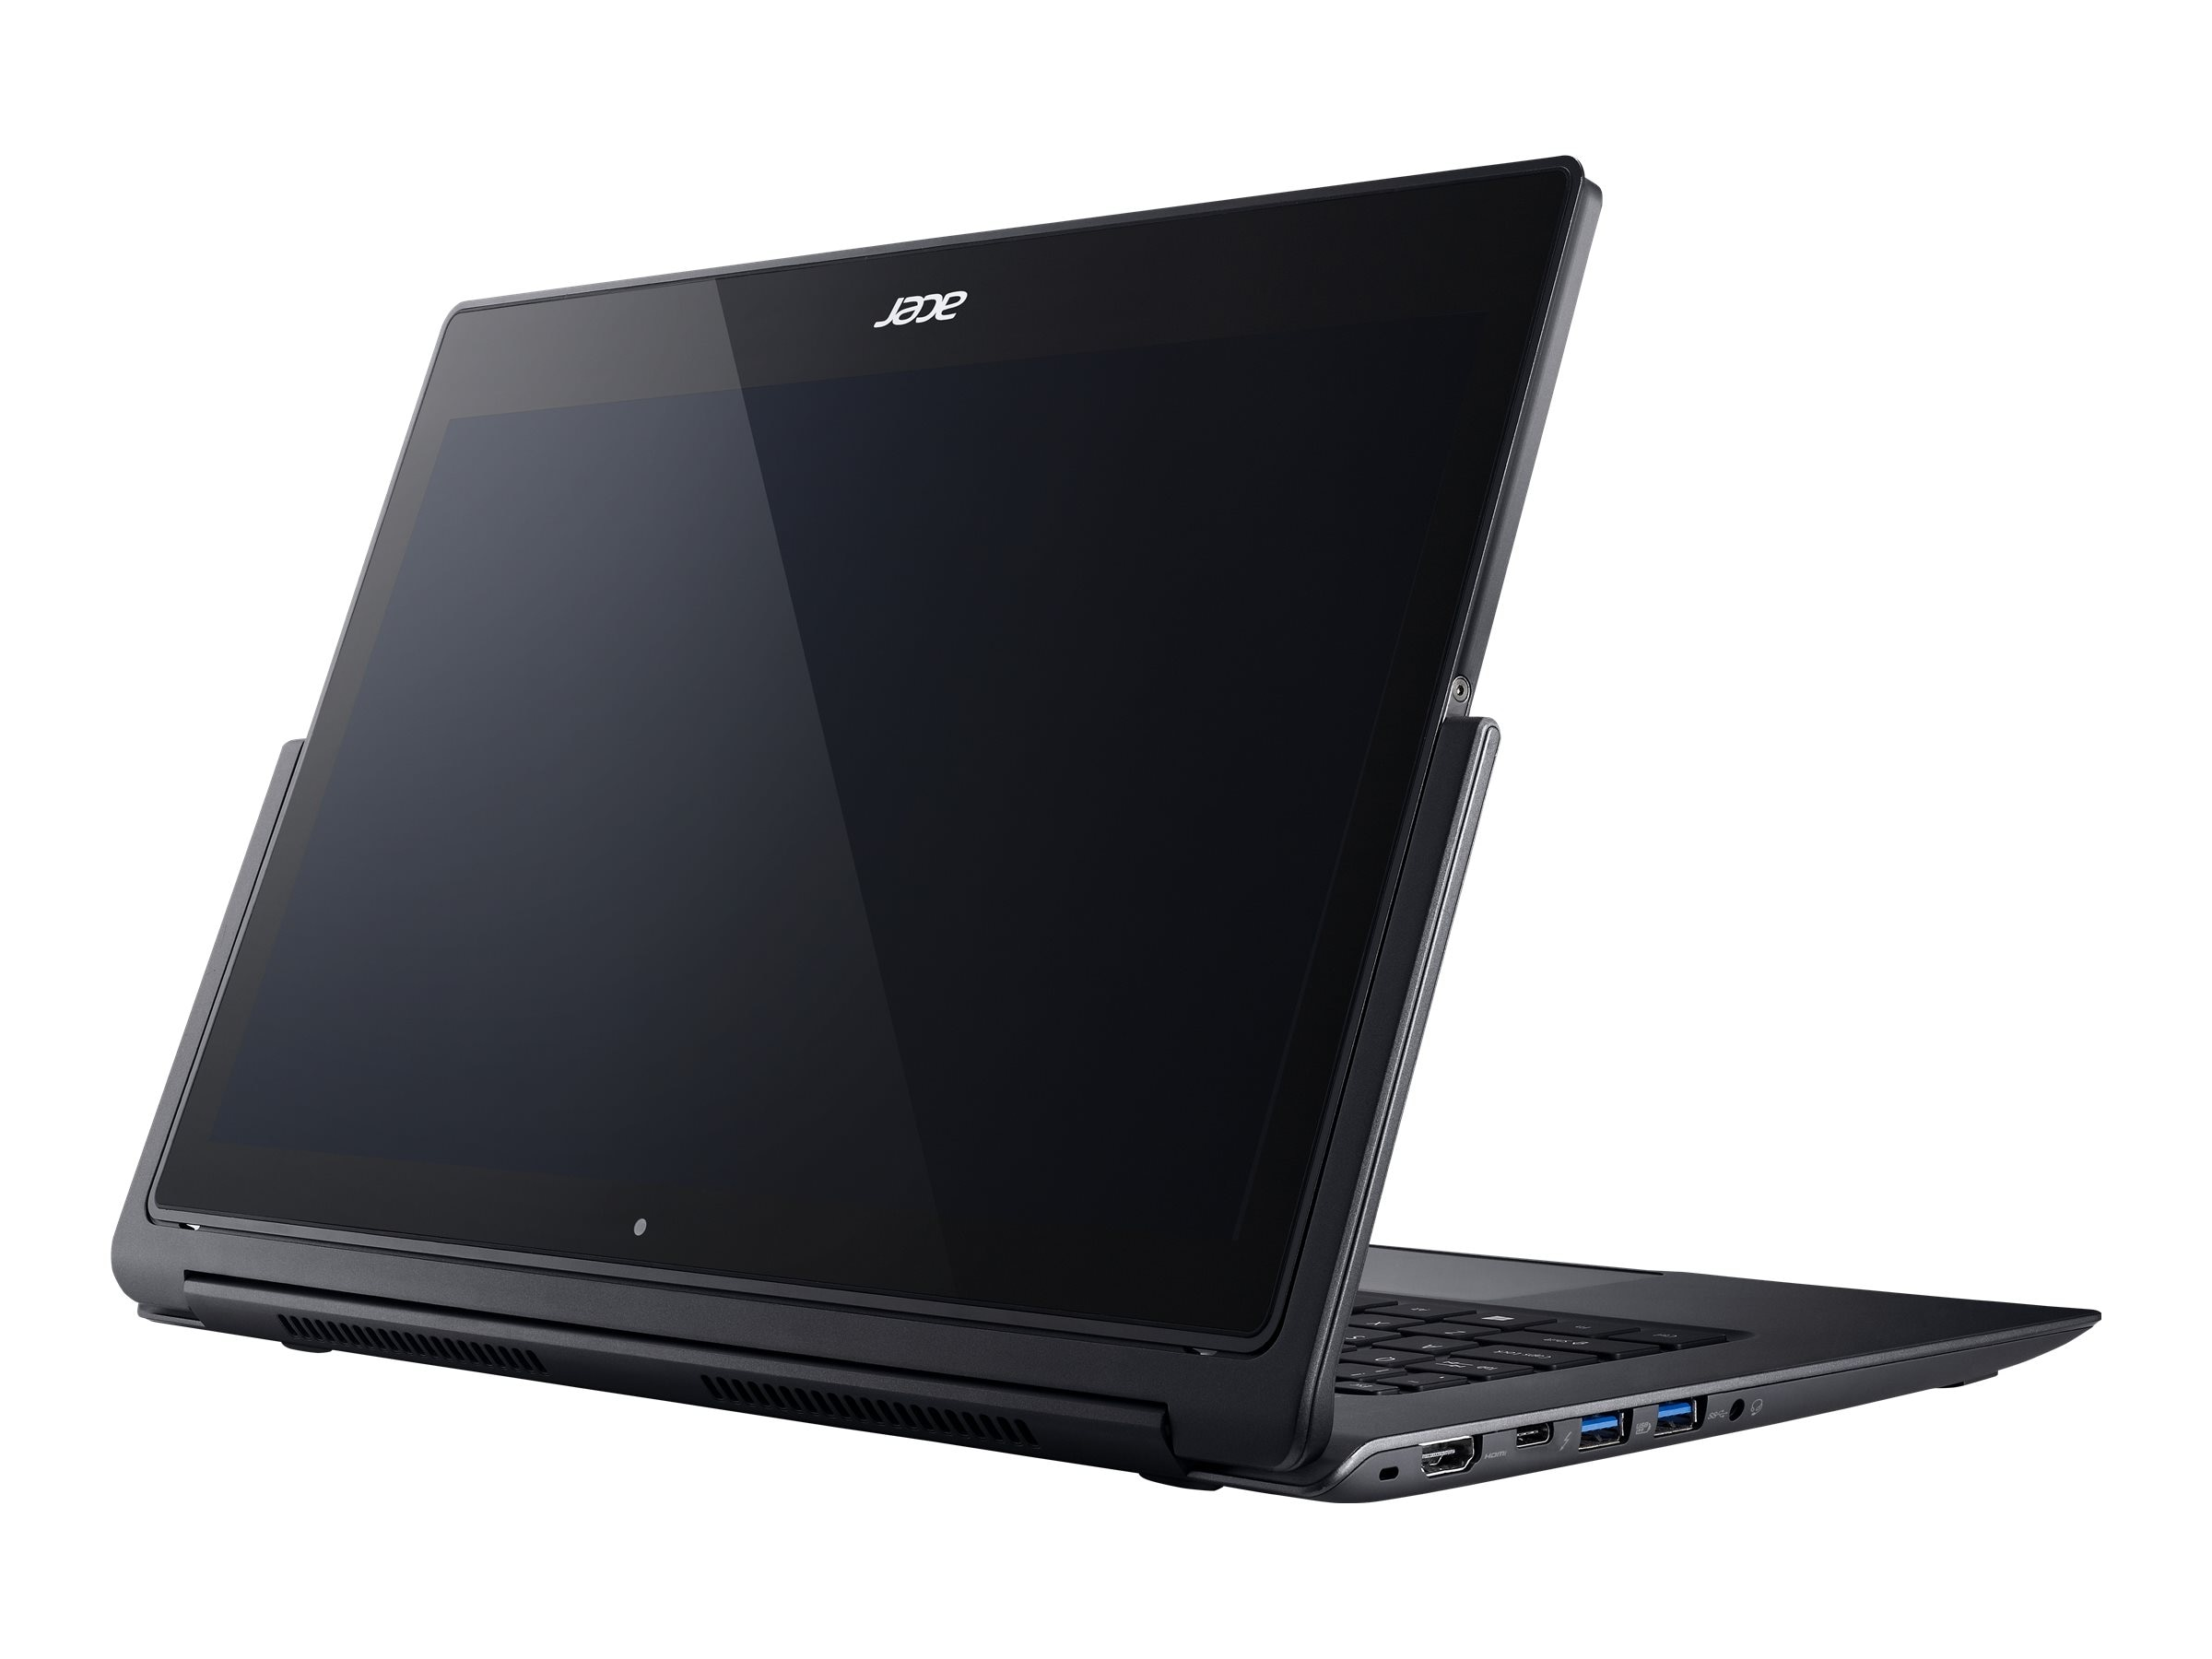 Acer Aspire R7-372T-50BG 2.3GHz processor Windows 10 Pro 64-bit Edition, NX.G8SAA.004, 31017534, Tablets